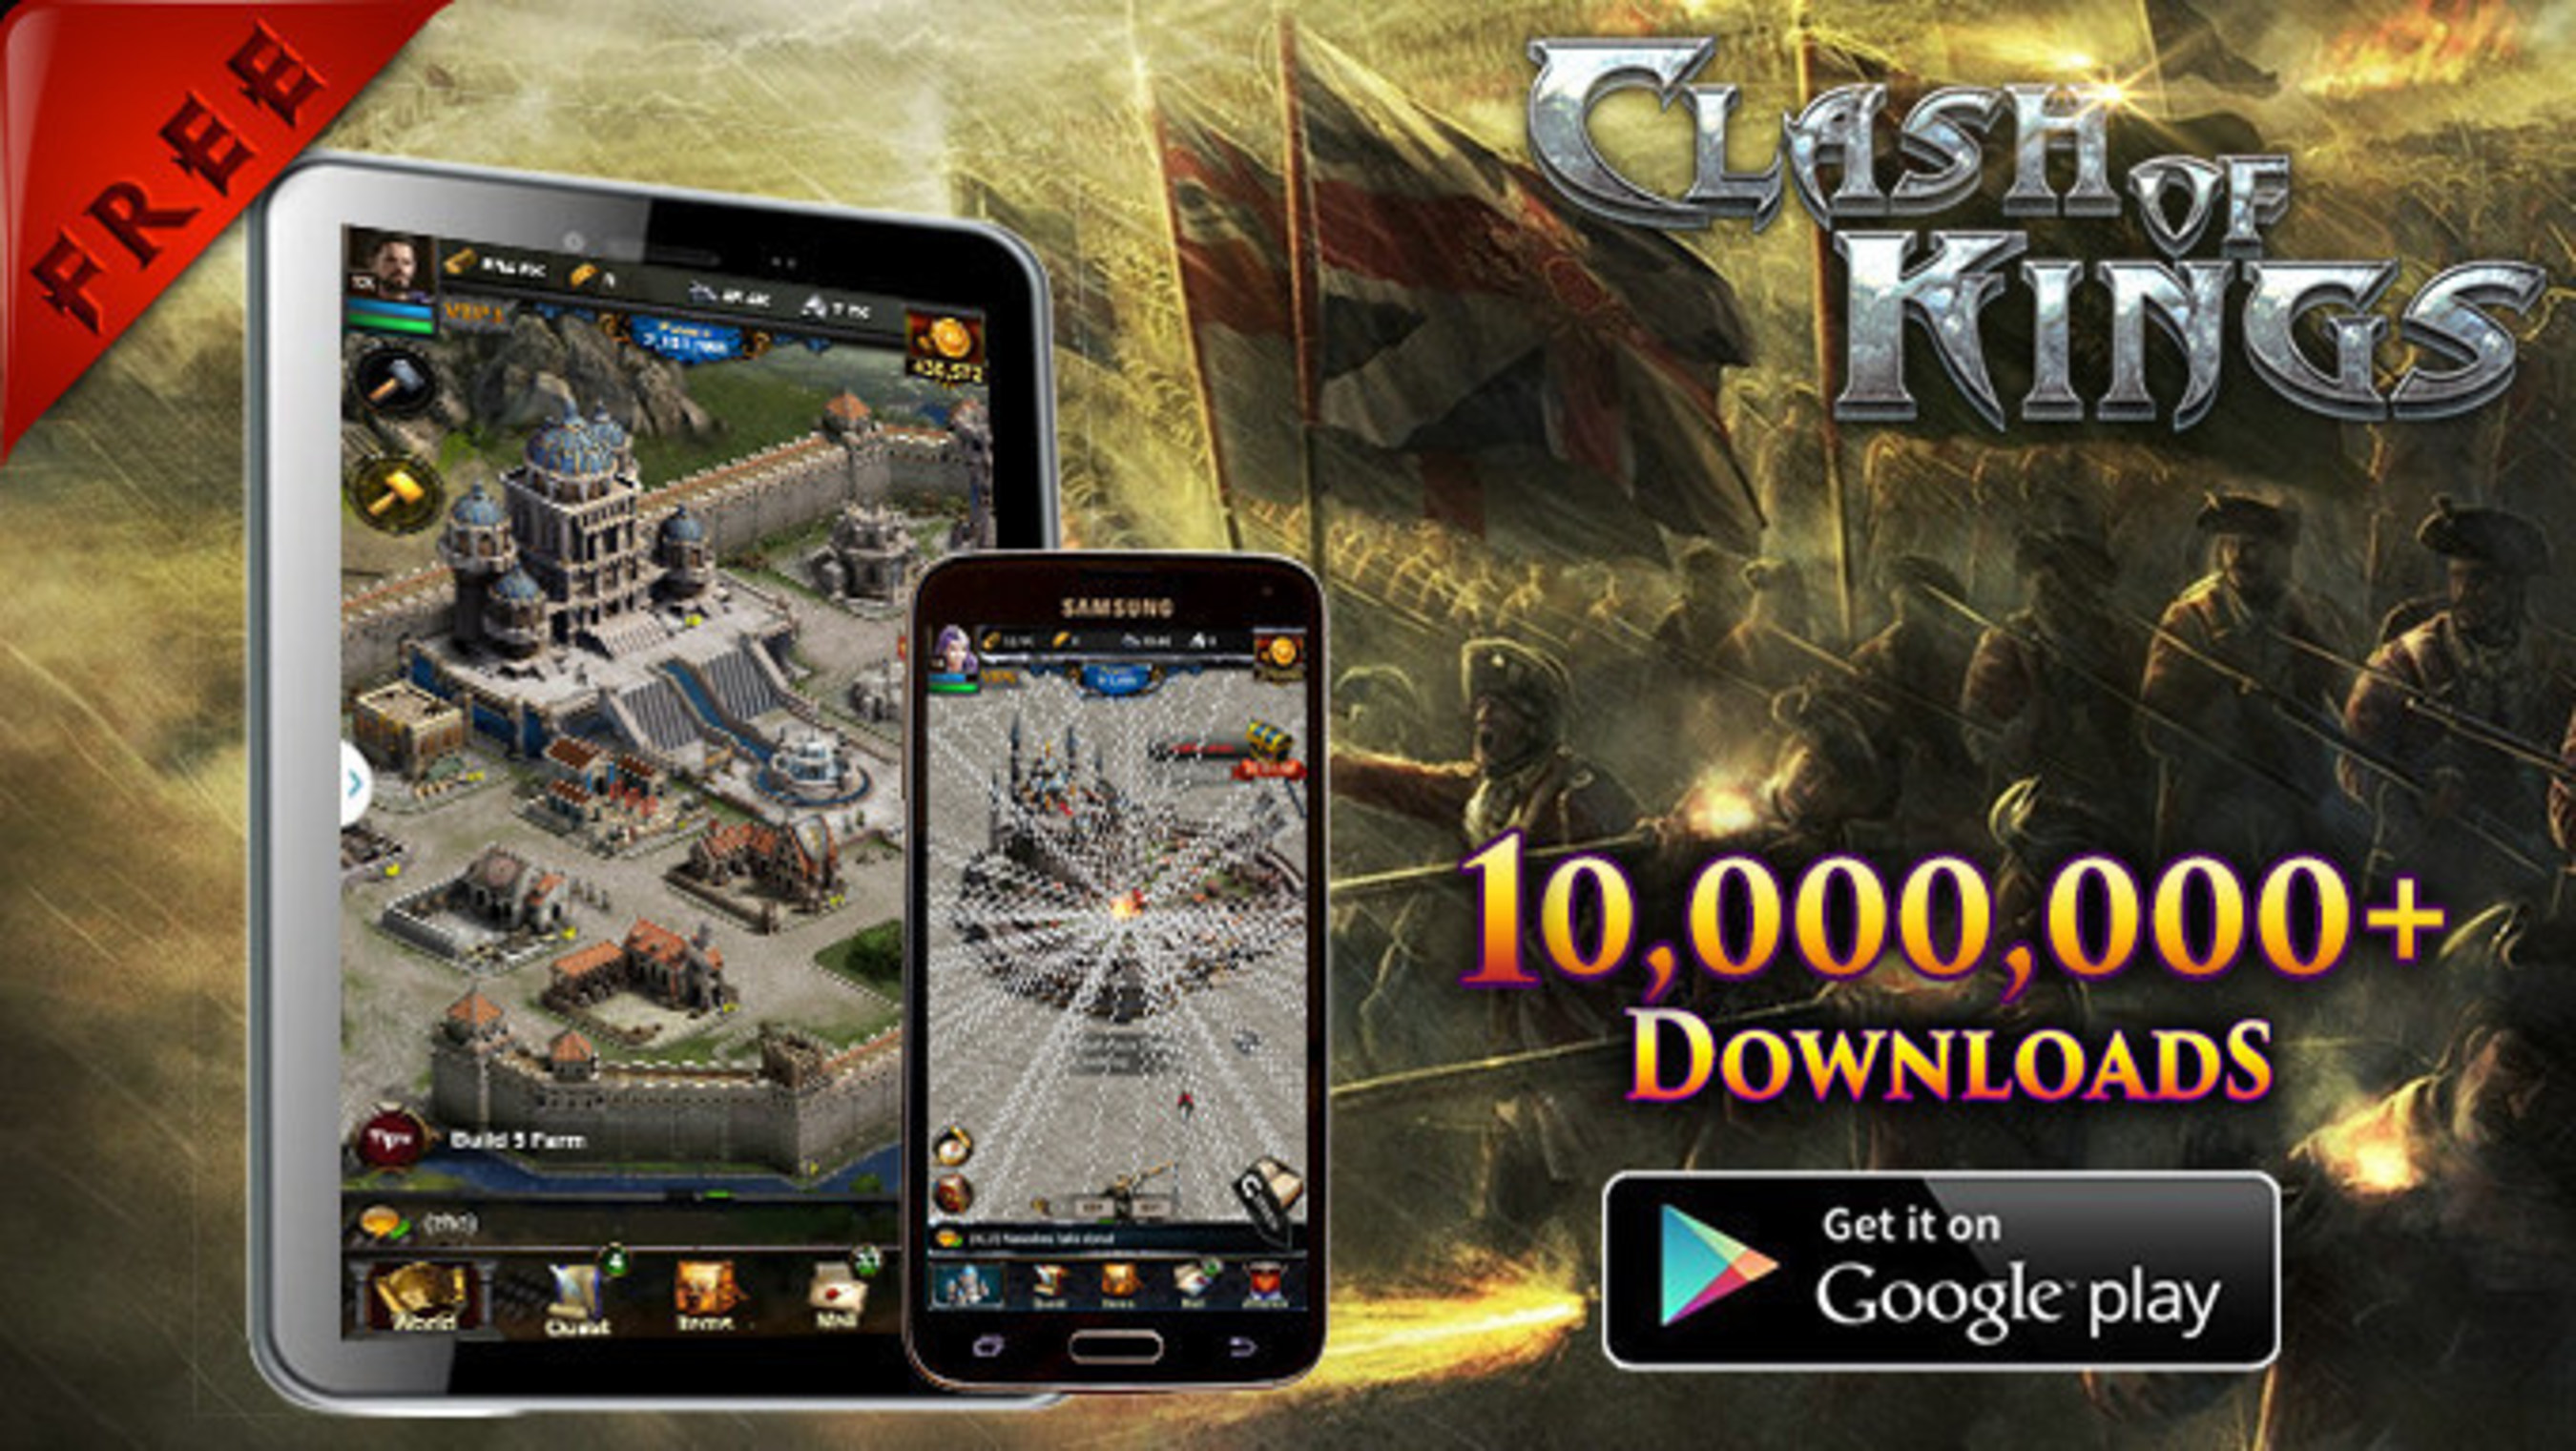 Mehr als 10 Millionen Downloads von Clash of Kings auf Google Play